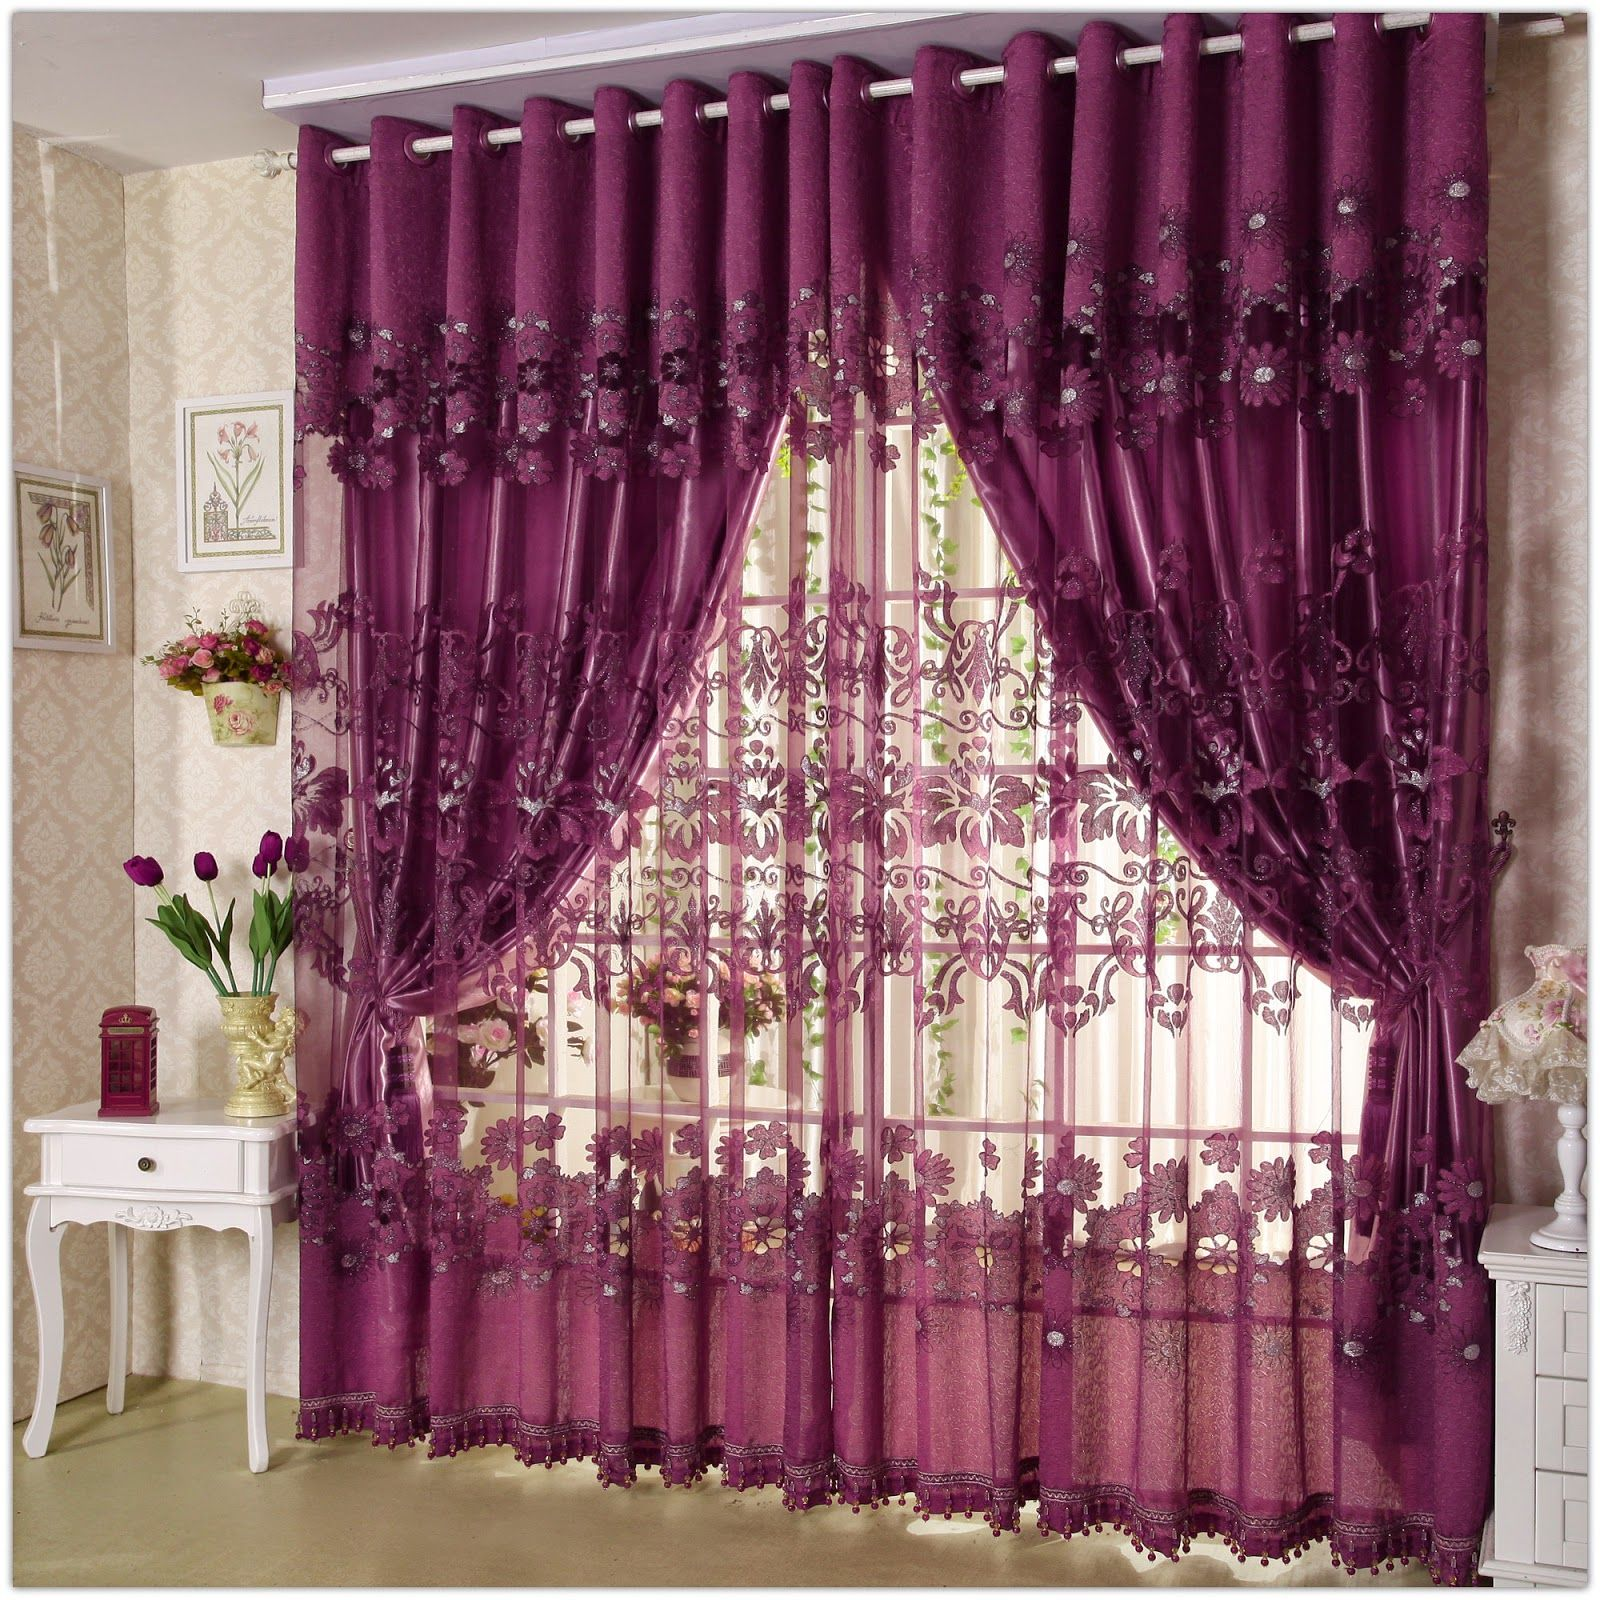 Unique curtain designs for living room window decorationsUnique curtain designs for living room window decorations   Unique  . Modern Living Room Drapery Ideas. Home Design Ideas